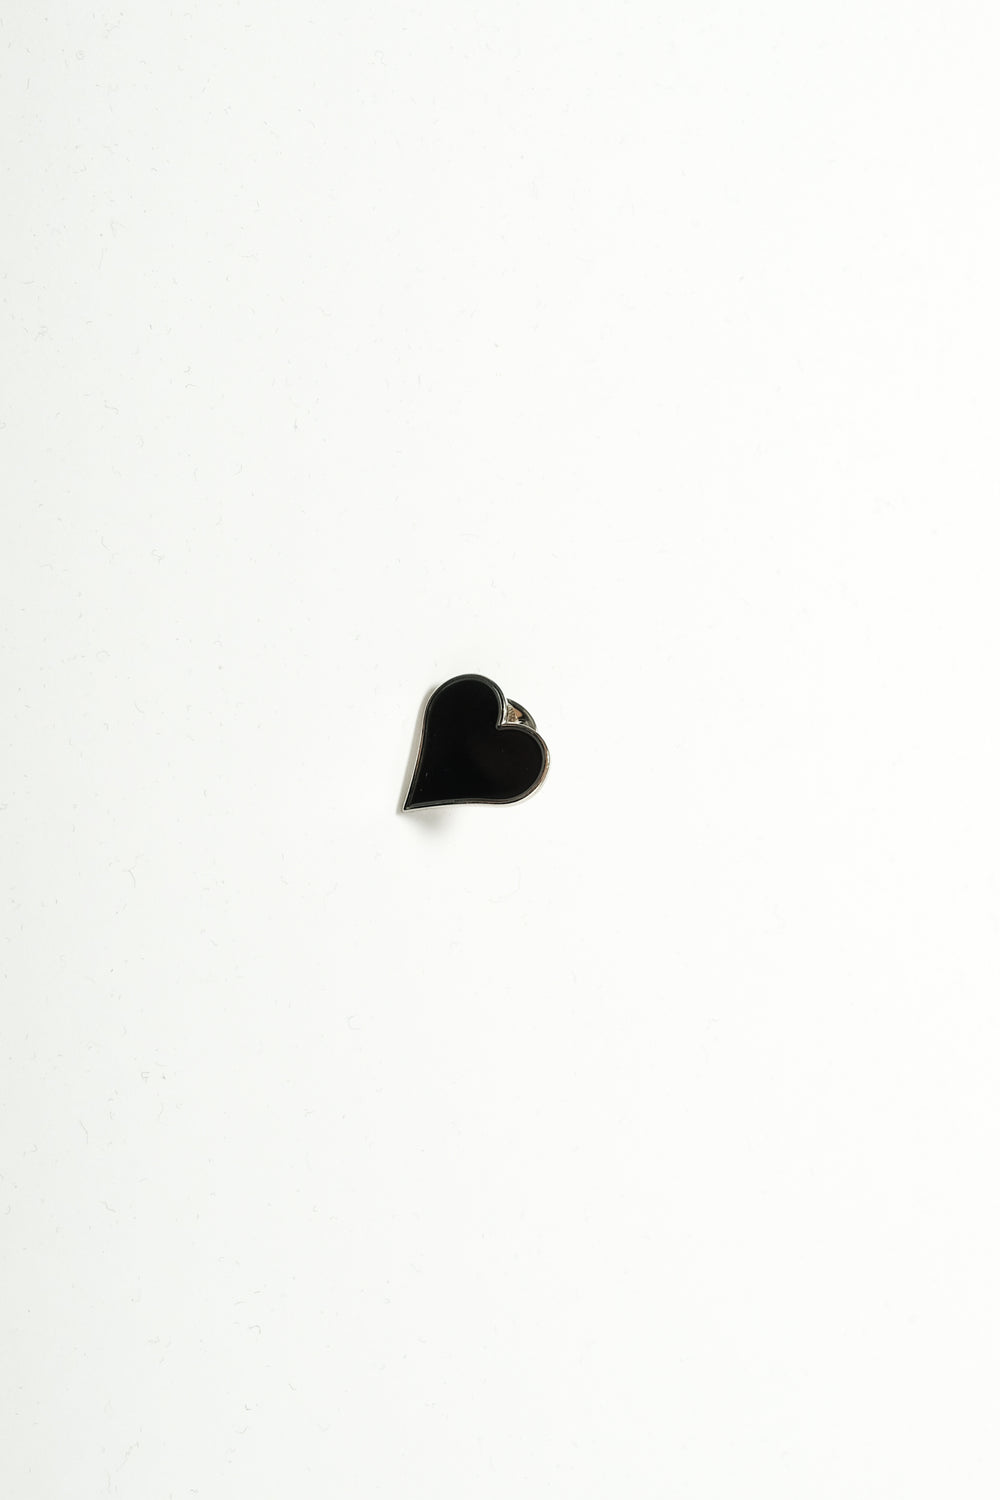 Luke Vicious Black Heart Pin